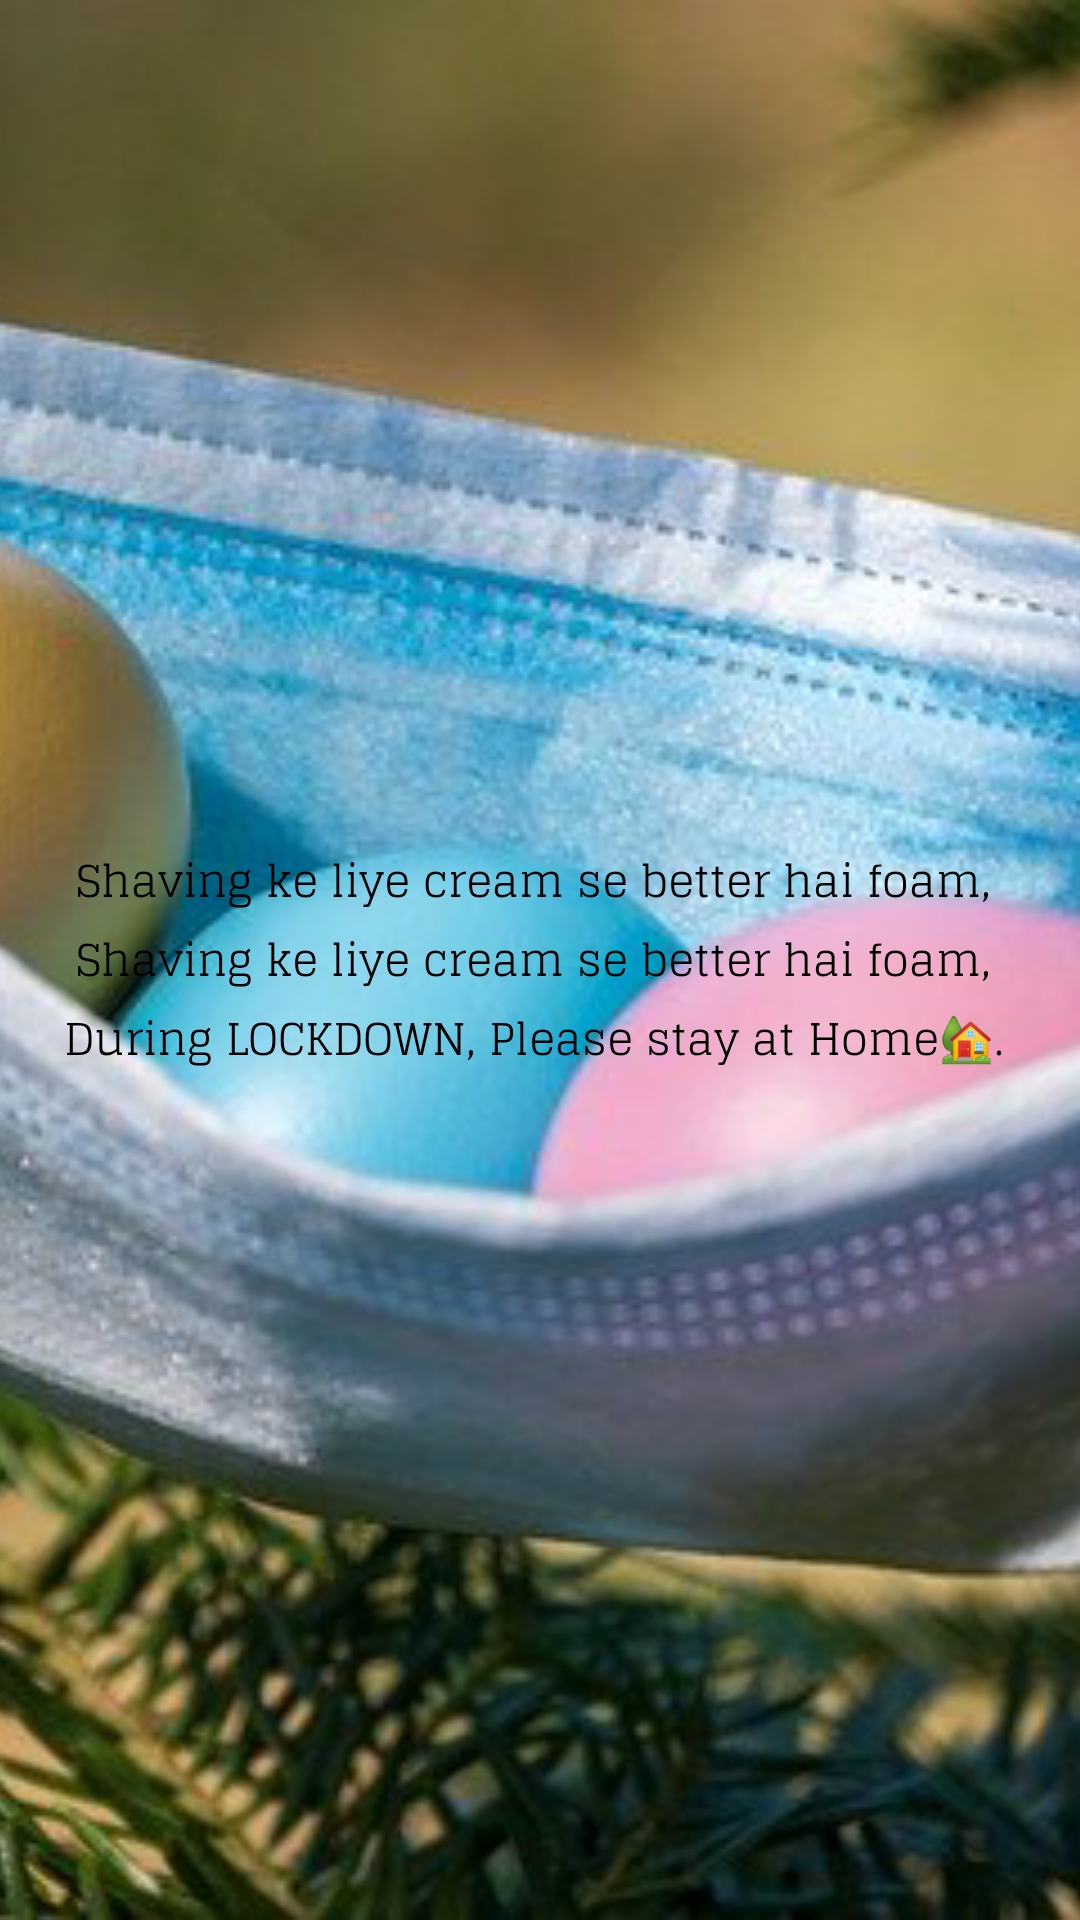 Shaving ke liye cream se better hai foam,  Shaving ke liye cream se better hai foam,  During LOCKDOWN, Please stay at Home🏡.